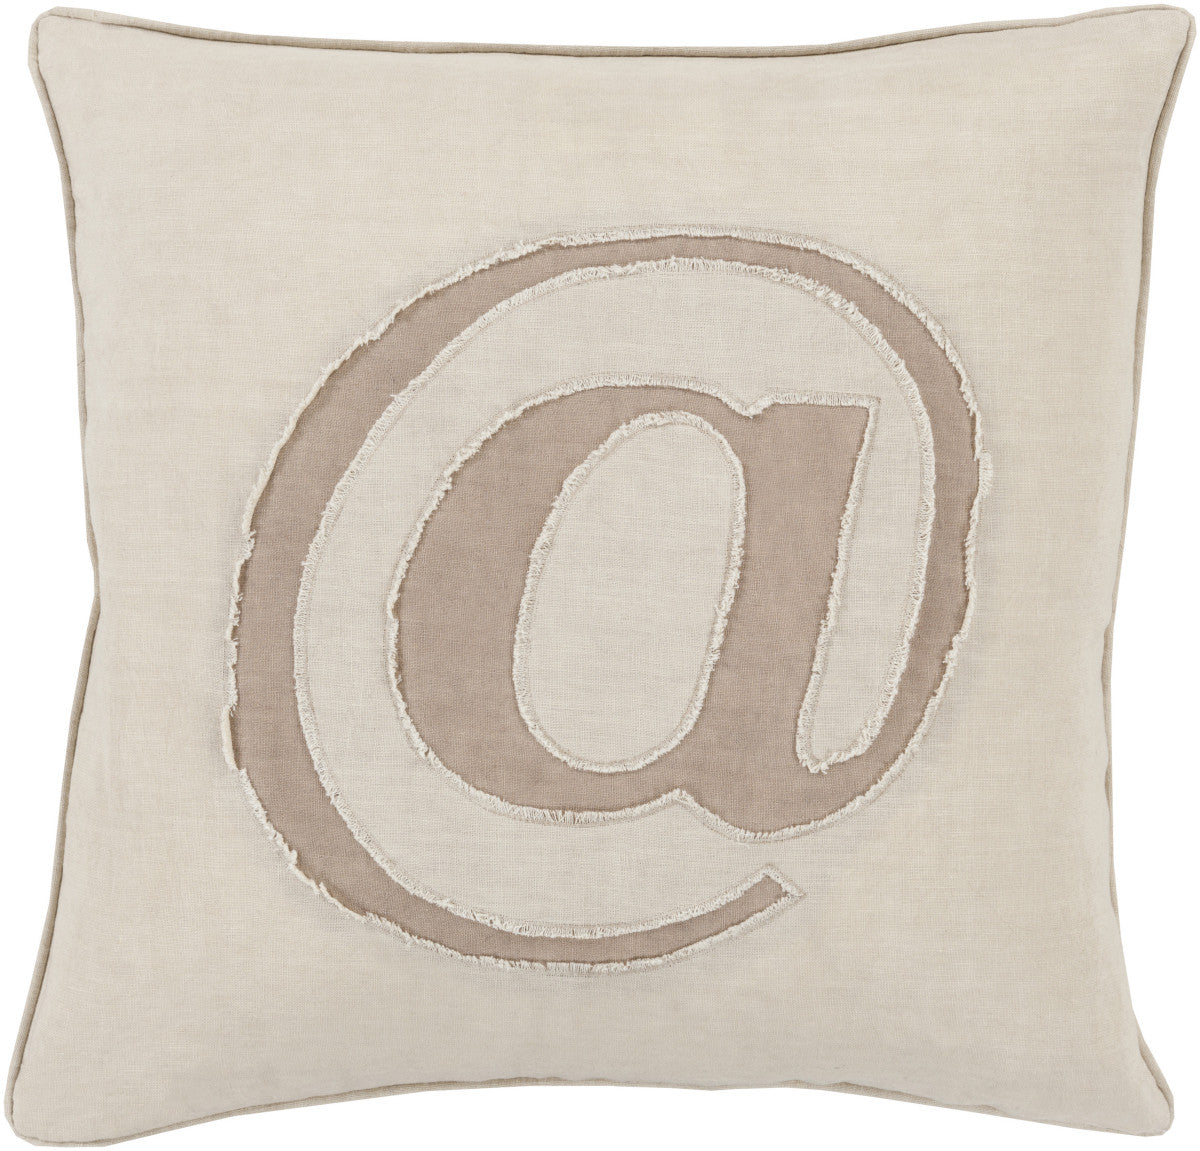 Surya Linen Text Where it's at LX-001 Pillow